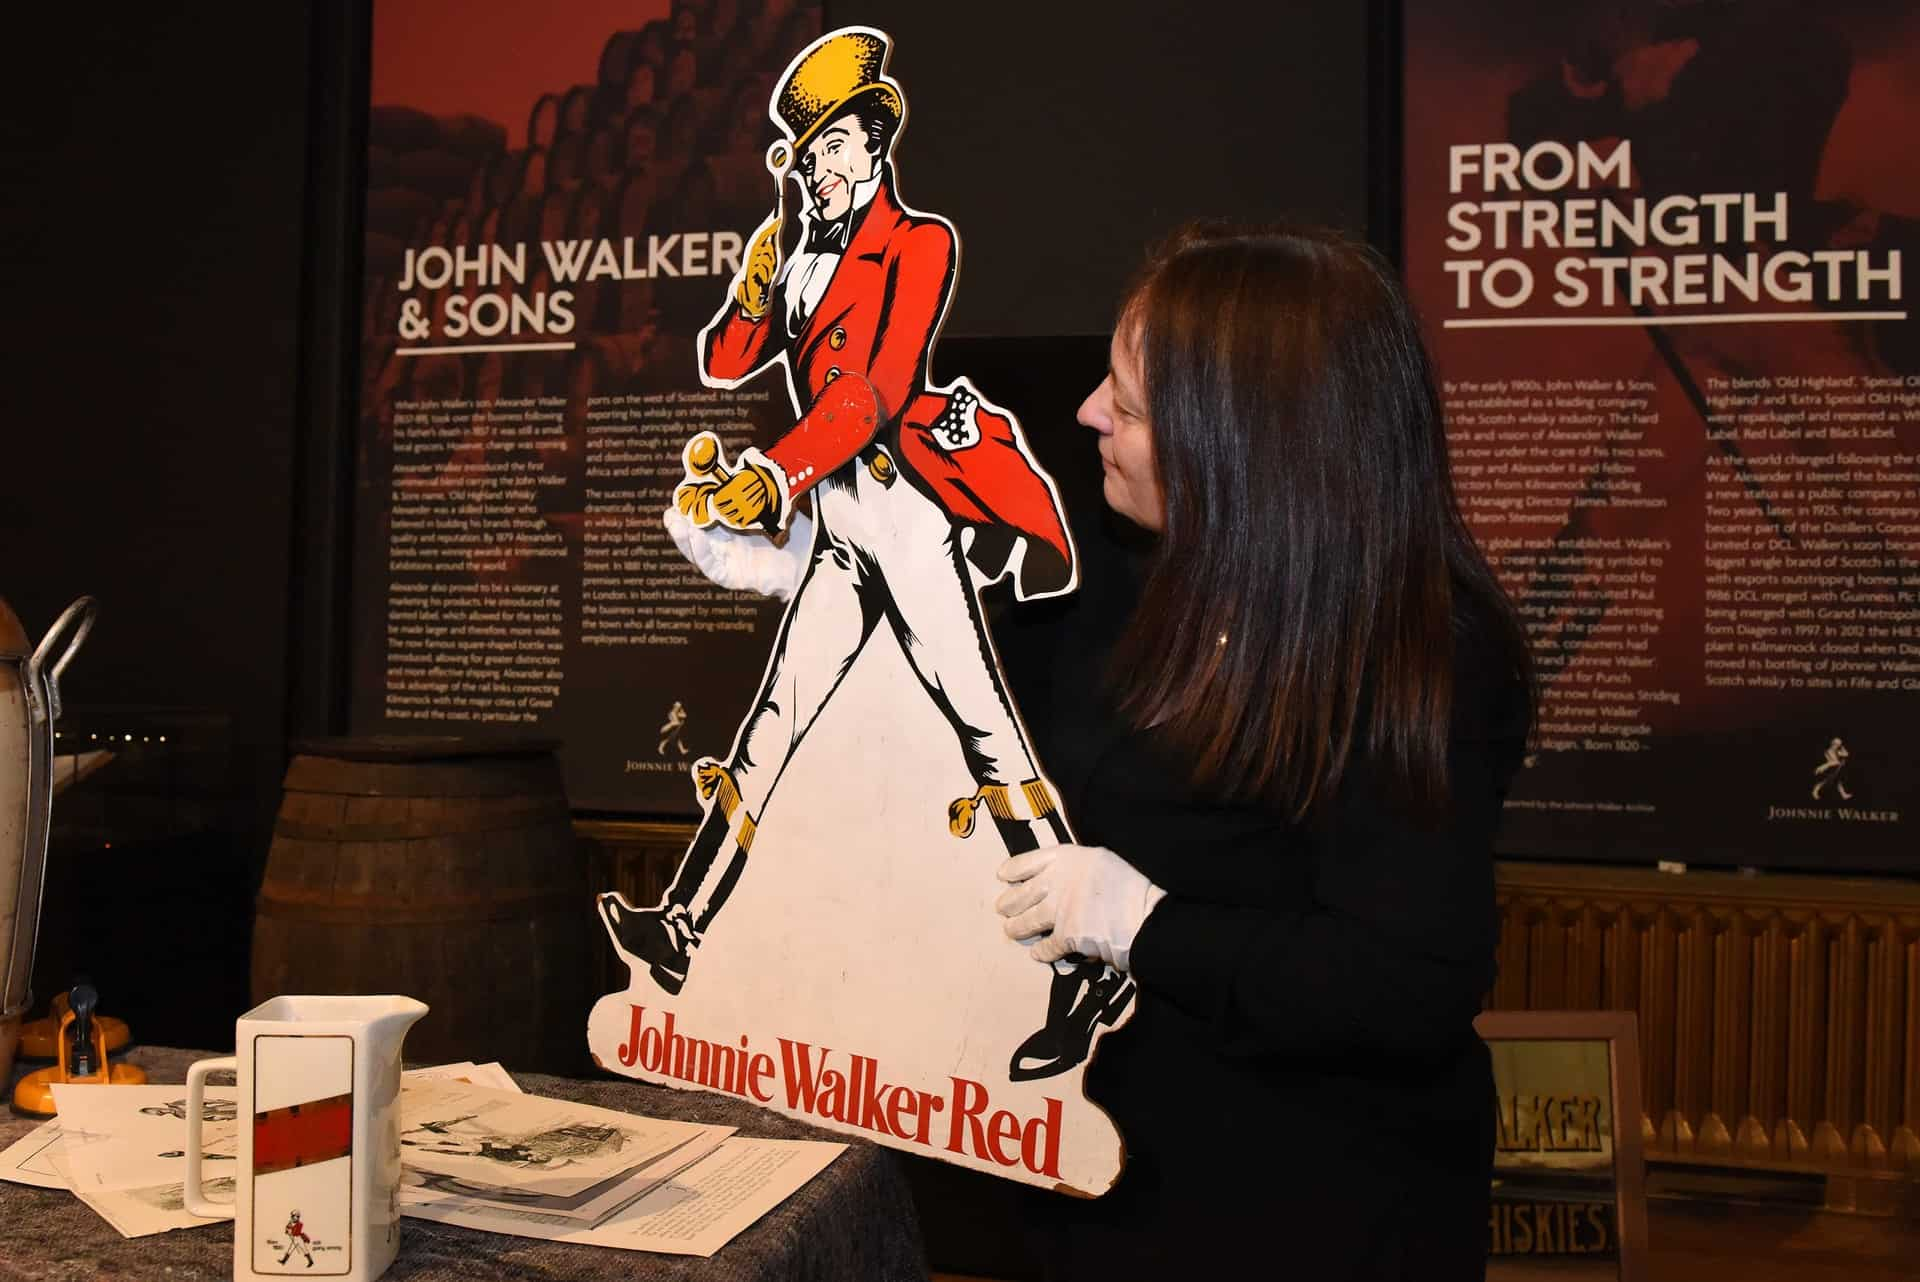 Johnnie-Walker-–-Celebrating-200-Years-exhibition-at-the-Dick-Institute-3